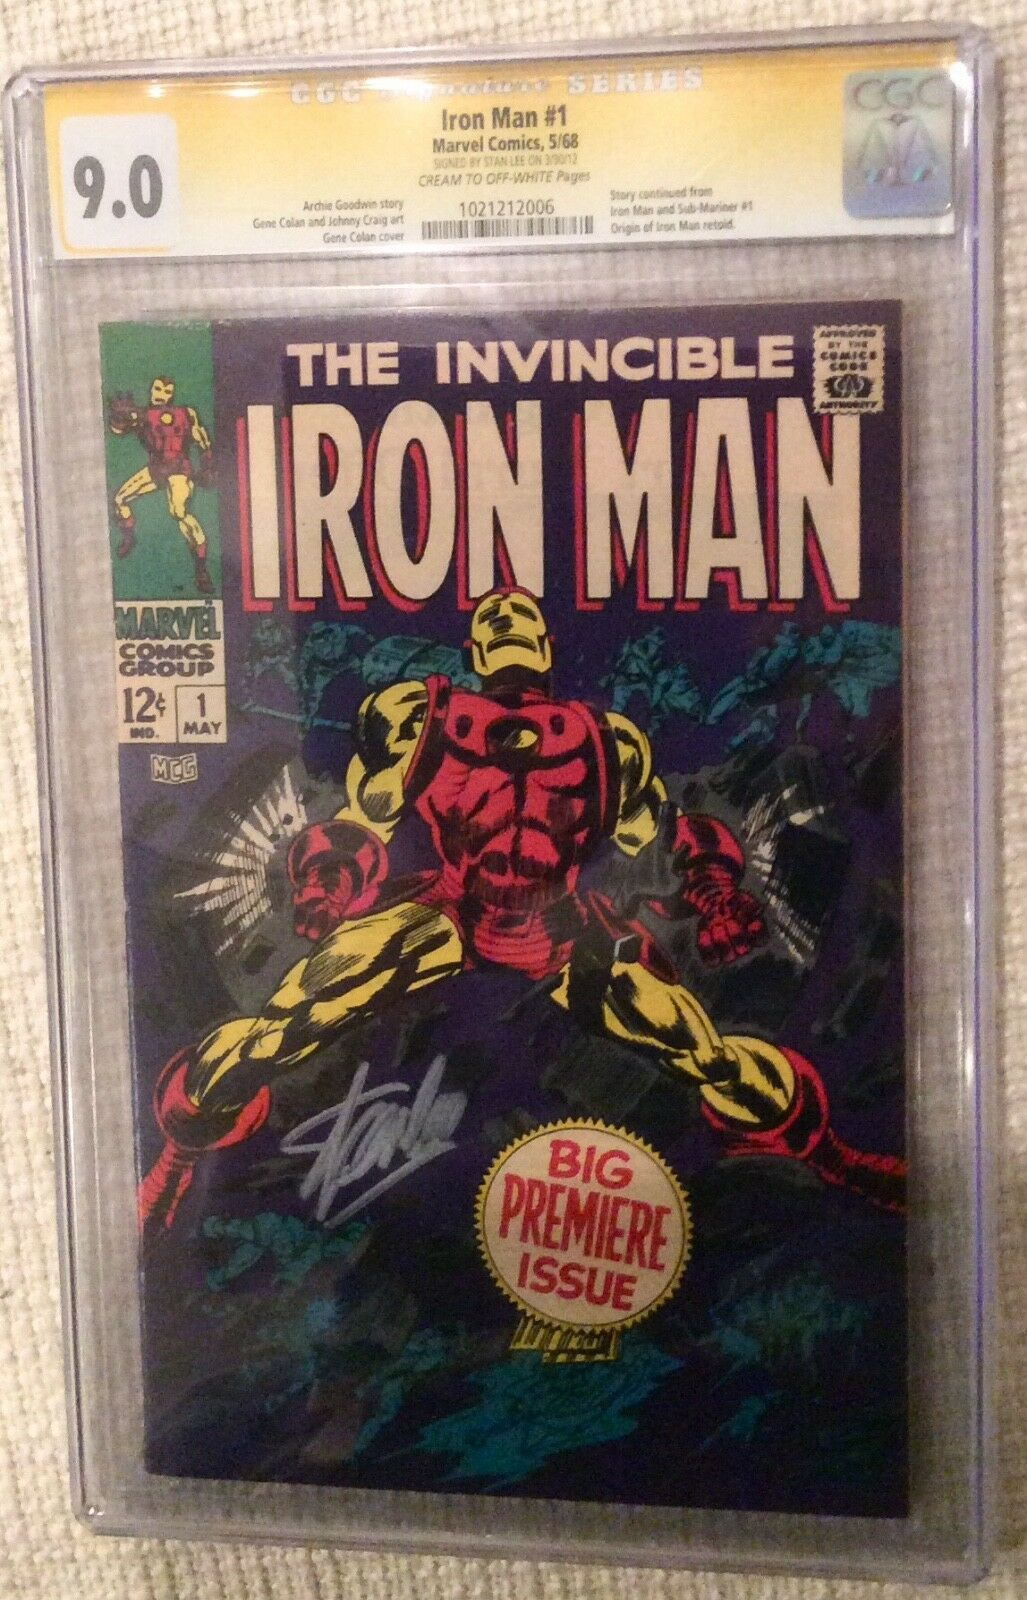 Iron man # 1 cgc 9.0  Solo title Stan Lee Sig, 55 Rare, Unpressed, Avengers ASM